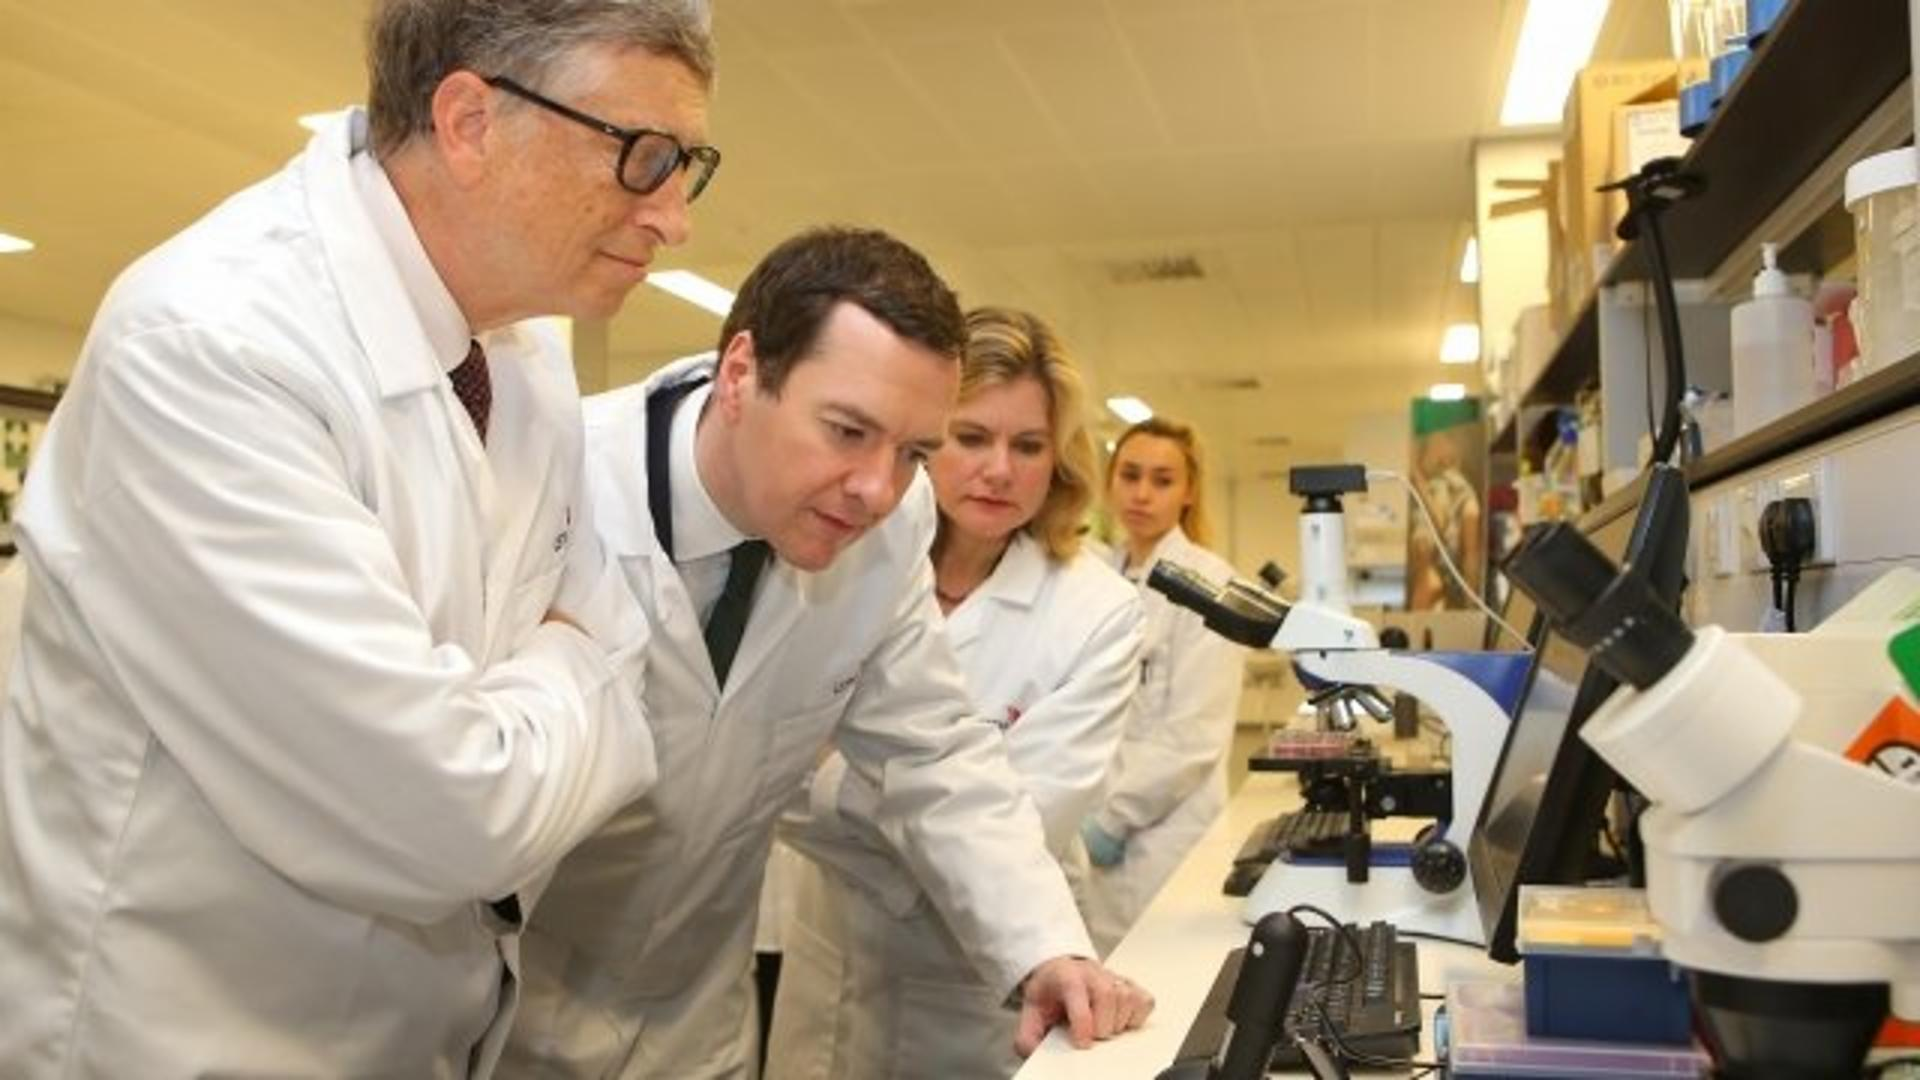 Progress On Global Poverty And Disease At Risk, Gates Says | HuffPost Life